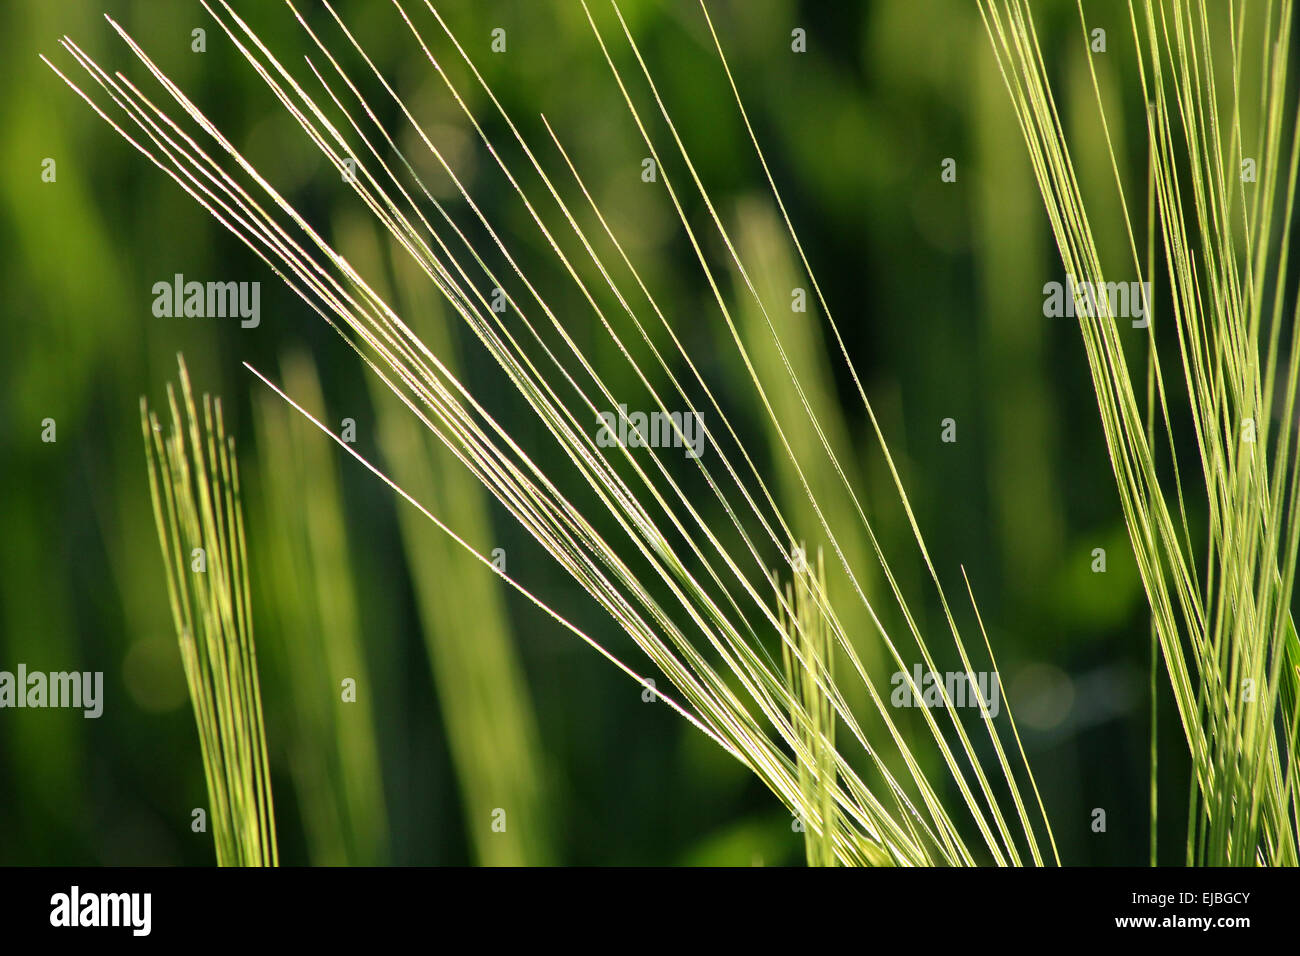 Barley with awns, cereal Stock Photo, Royalty Free Image: 15170035 ...